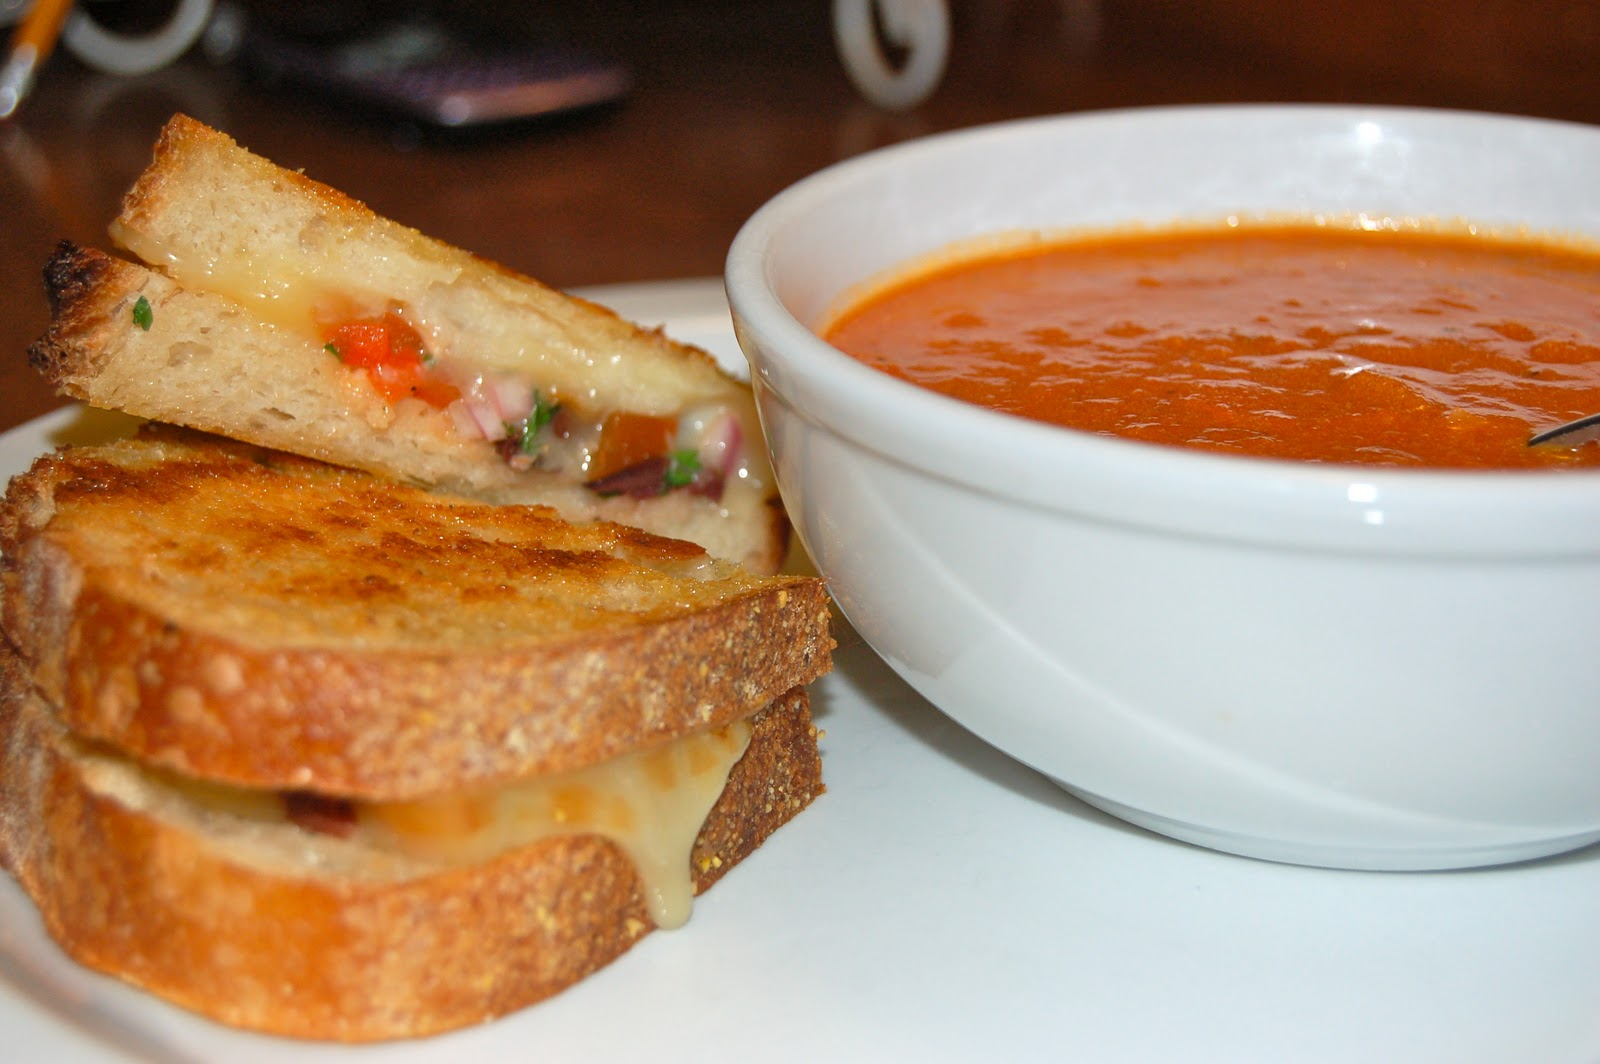 Grilled Cheese Sandwich and Roasted Tomato Soup